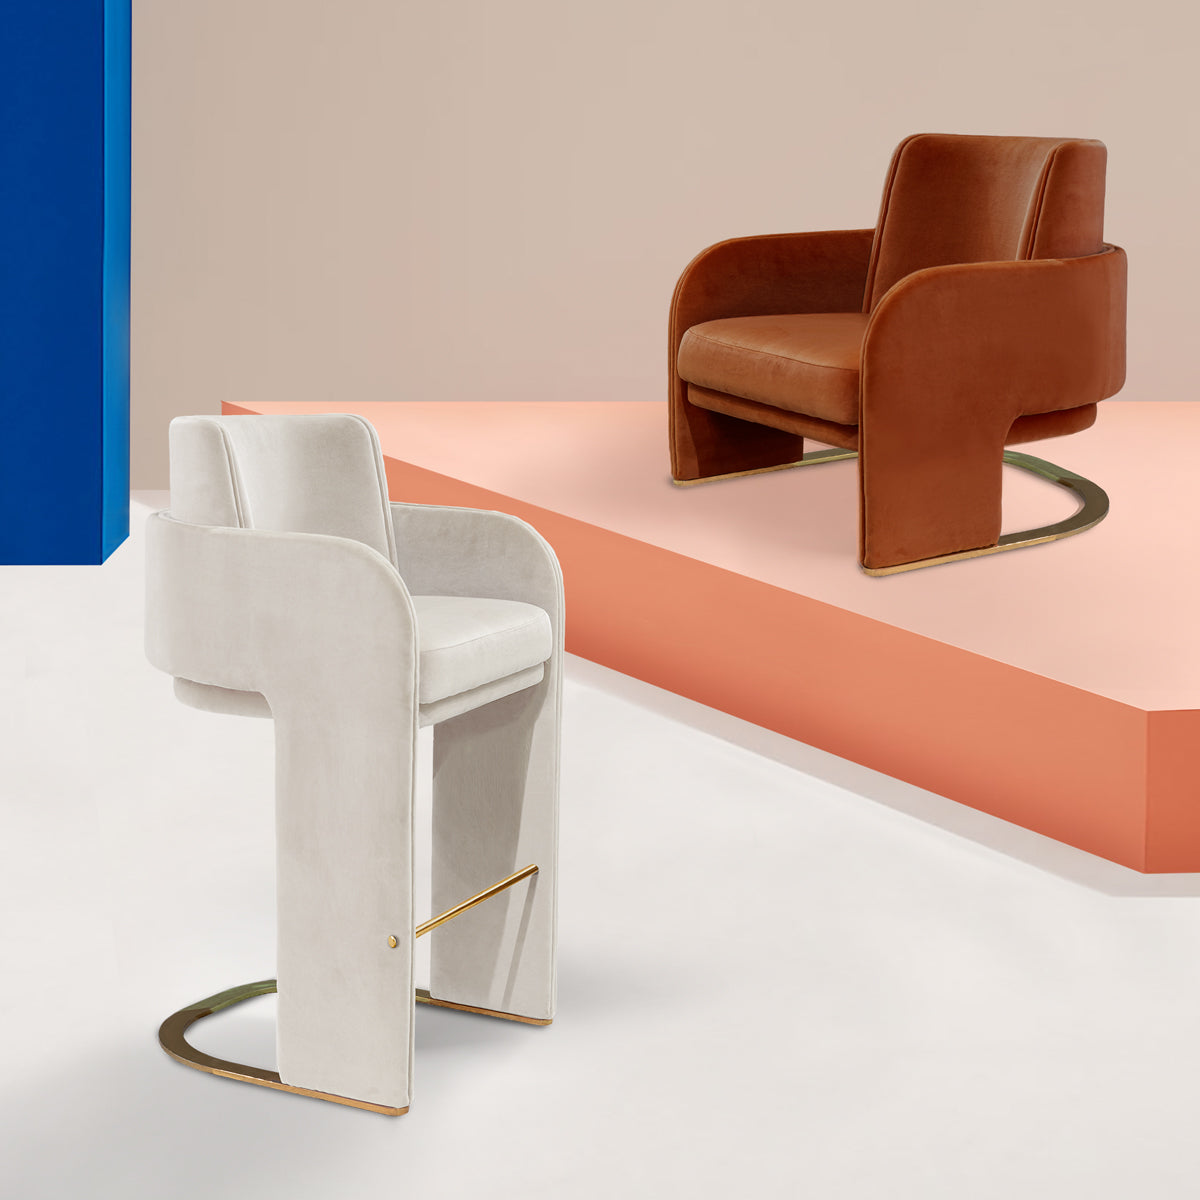 Odisseia Armchair by Dooq | Do Shop